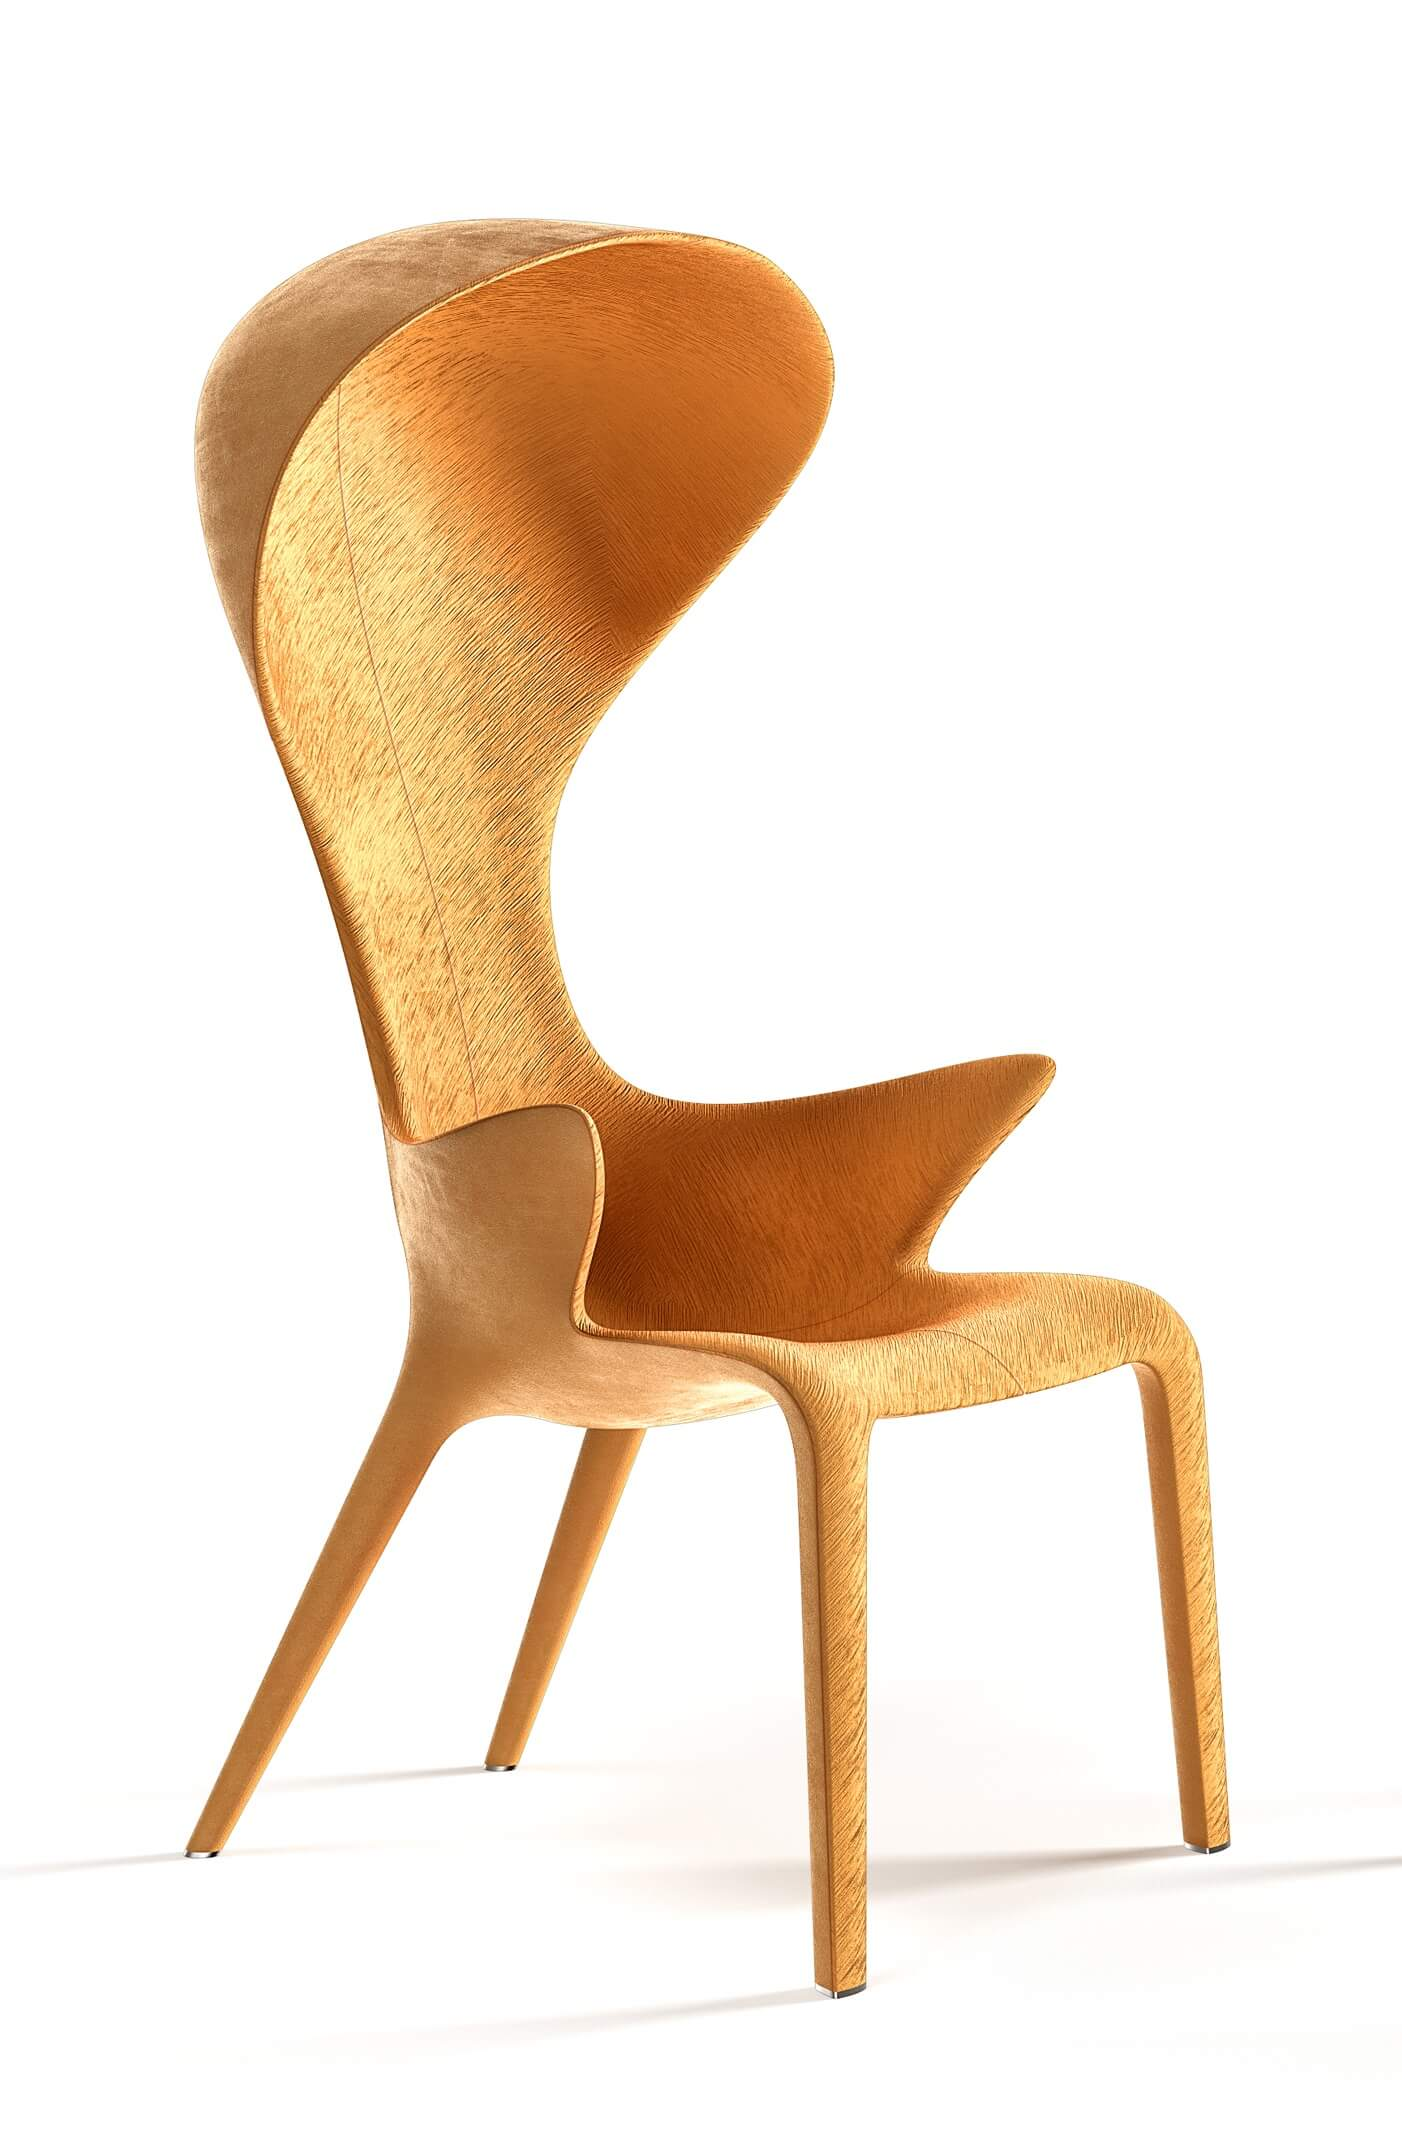 Contemporary Design Best Interior Designers in the World - Philippe Starck - Lou Think Armchair contemporary design Contemporary Design: Best Designers and Architects in the World Contemporary Design Best Interior Designers in the World Philippe Starck Lou Think Armchair